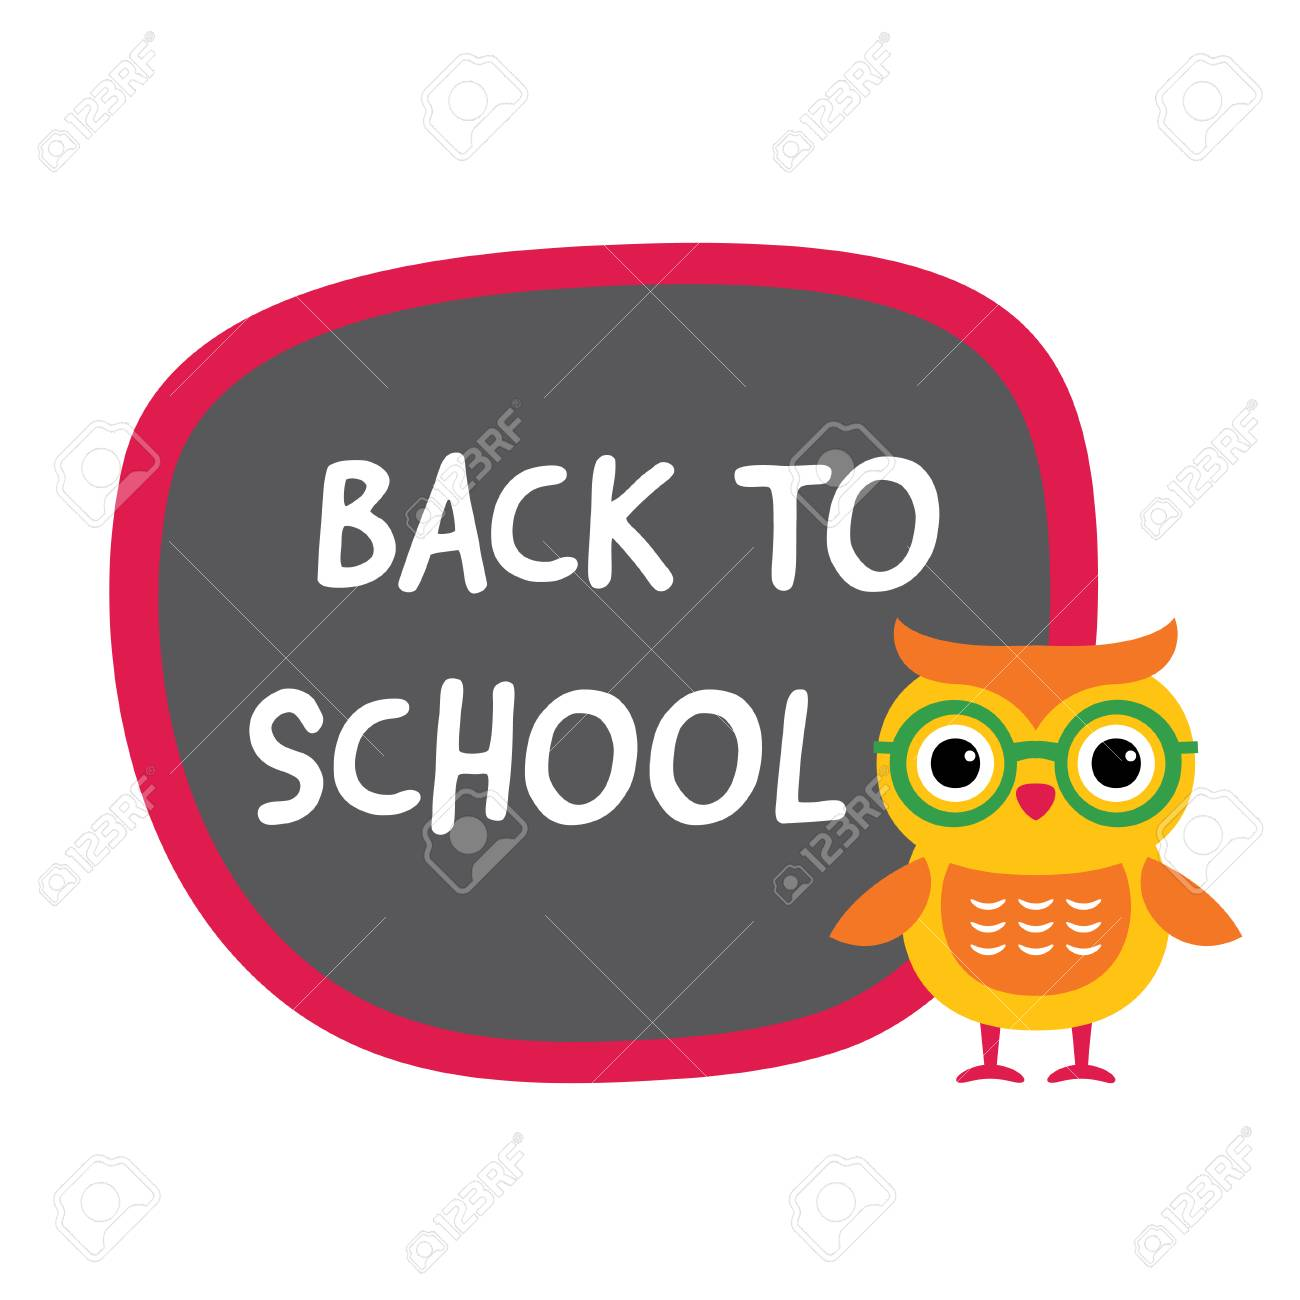 back to school banner with a cute owl royalty free cliparts, vectors